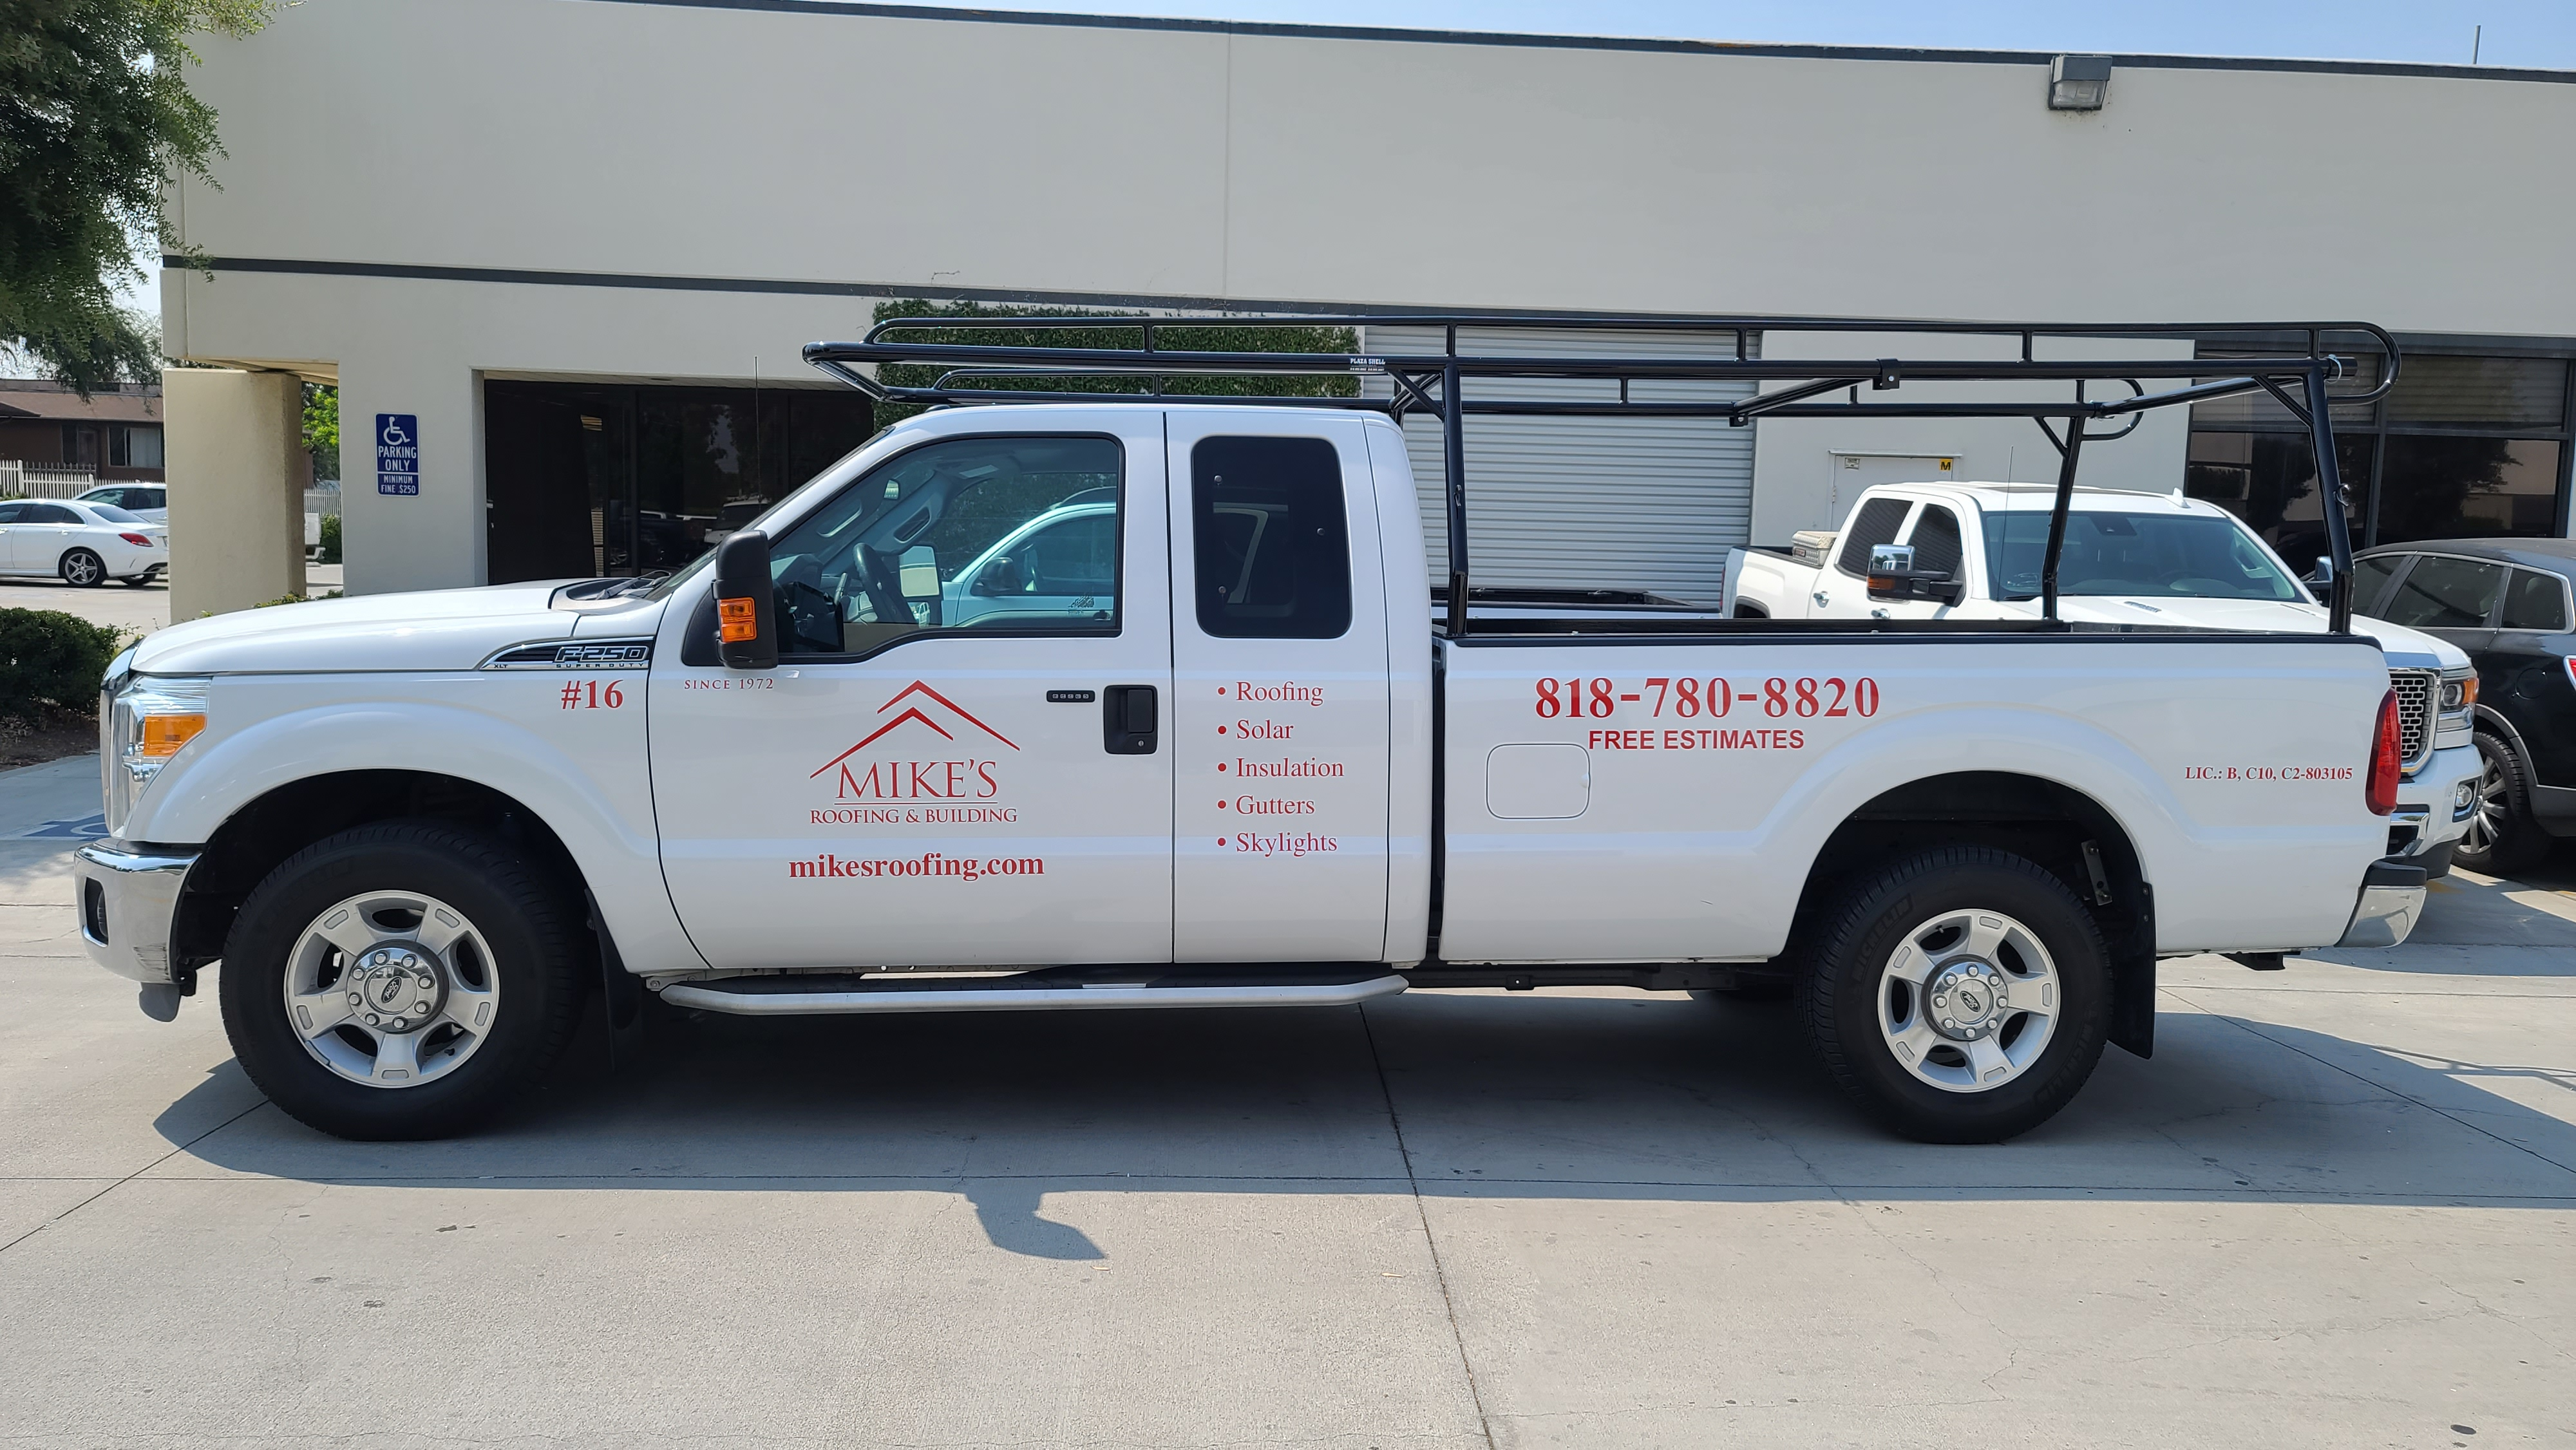 Rebranding also applies to vehicle wraps and graphics, like these new car decals for Mike Roofing's service truck that feature their company logo and contact details.